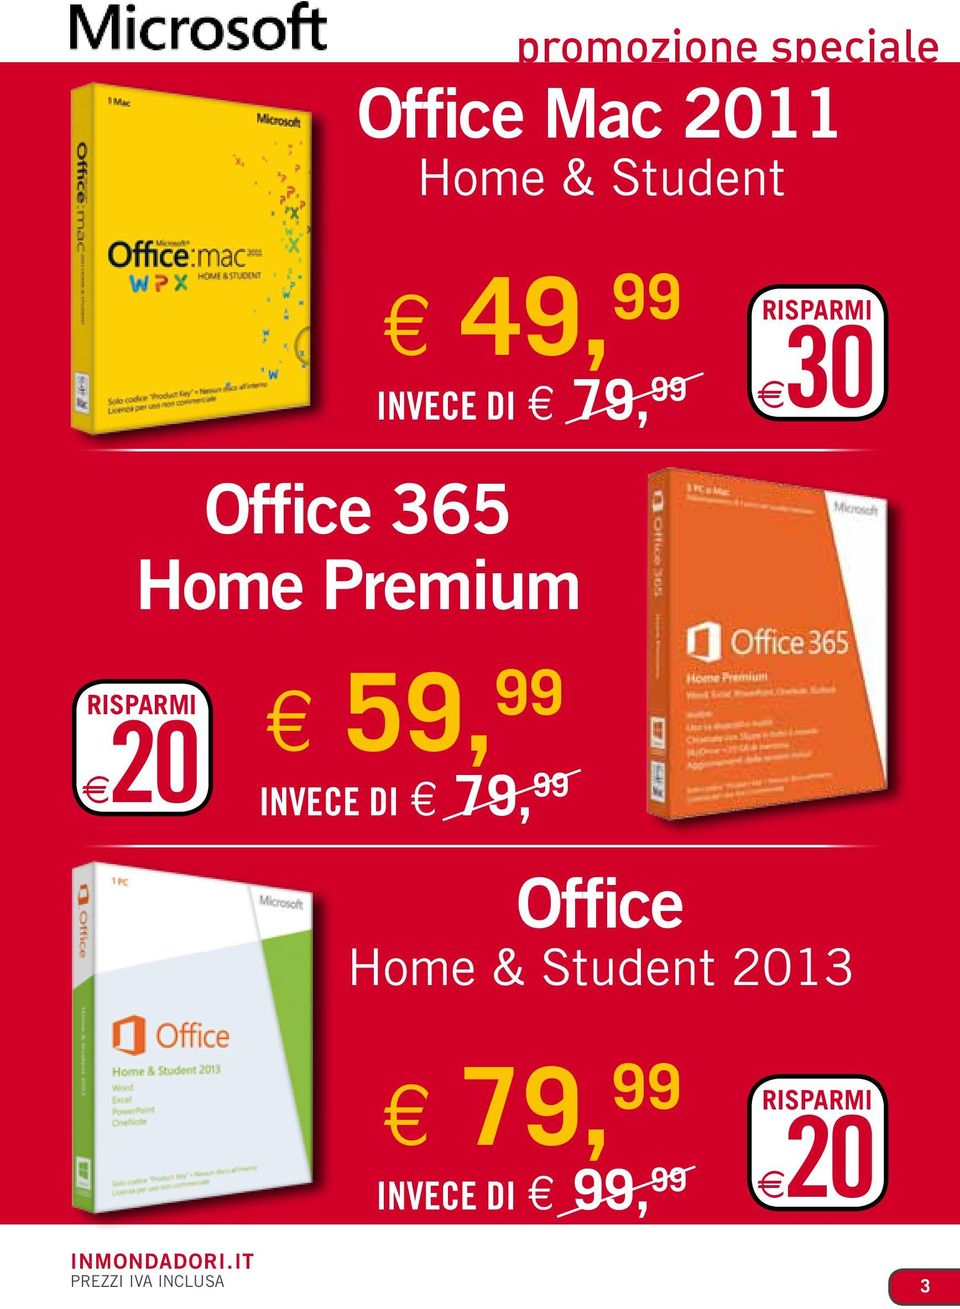 risparmi 720 59, 99 invece di 79, 99 Office Home & Student